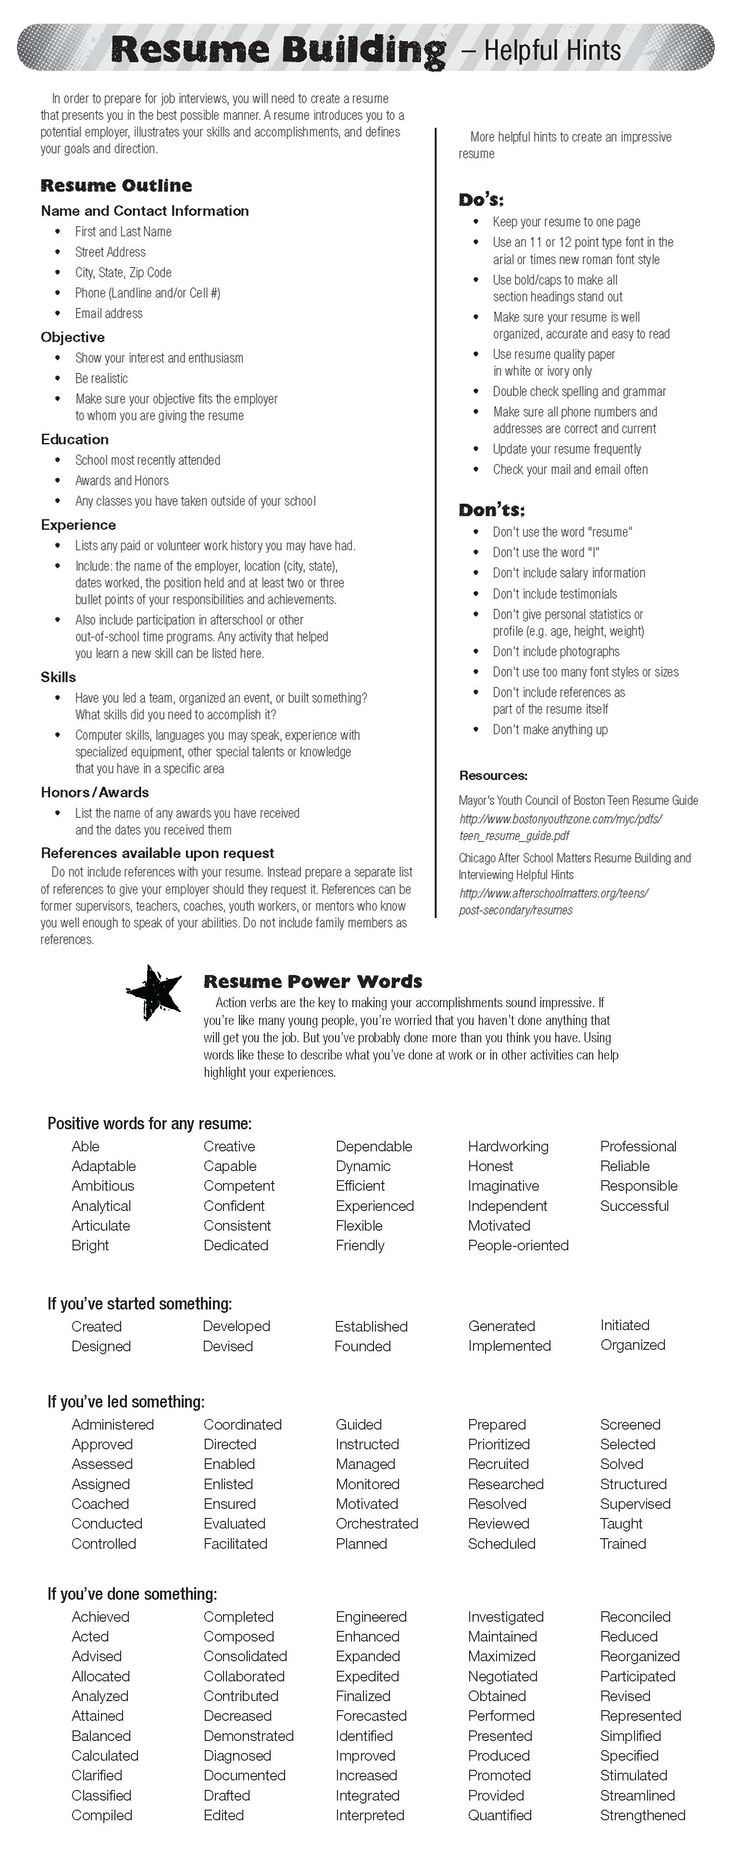 Opposenewapstandardsus  Personable  Ideas About Resume On Pinterest  Cv Format Resume Cv And  With Great  Ideas About Resume On Pinterest  Cv Format Resume Cv And Resume Templates With Charming Cashier Resume Samples Also First Year Teacher Resume Examples In Addition Mailroom Clerk Resume And Example Of Retail Resume As Well As Technical Skills Examples For Resume Additionally Career Resumes From Pinterestcom With Opposenewapstandardsus  Great  Ideas About Resume On Pinterest  Cv Format Resume Cv And  With Charming  Ideas About Resume On Pinterest  Cv Format Resume Cv And Resume Templates And Personable Cashier Resume Samples Also First Year Teacher Resume Examples In Addition Mailroom Clerk Resume From Pinterestcom